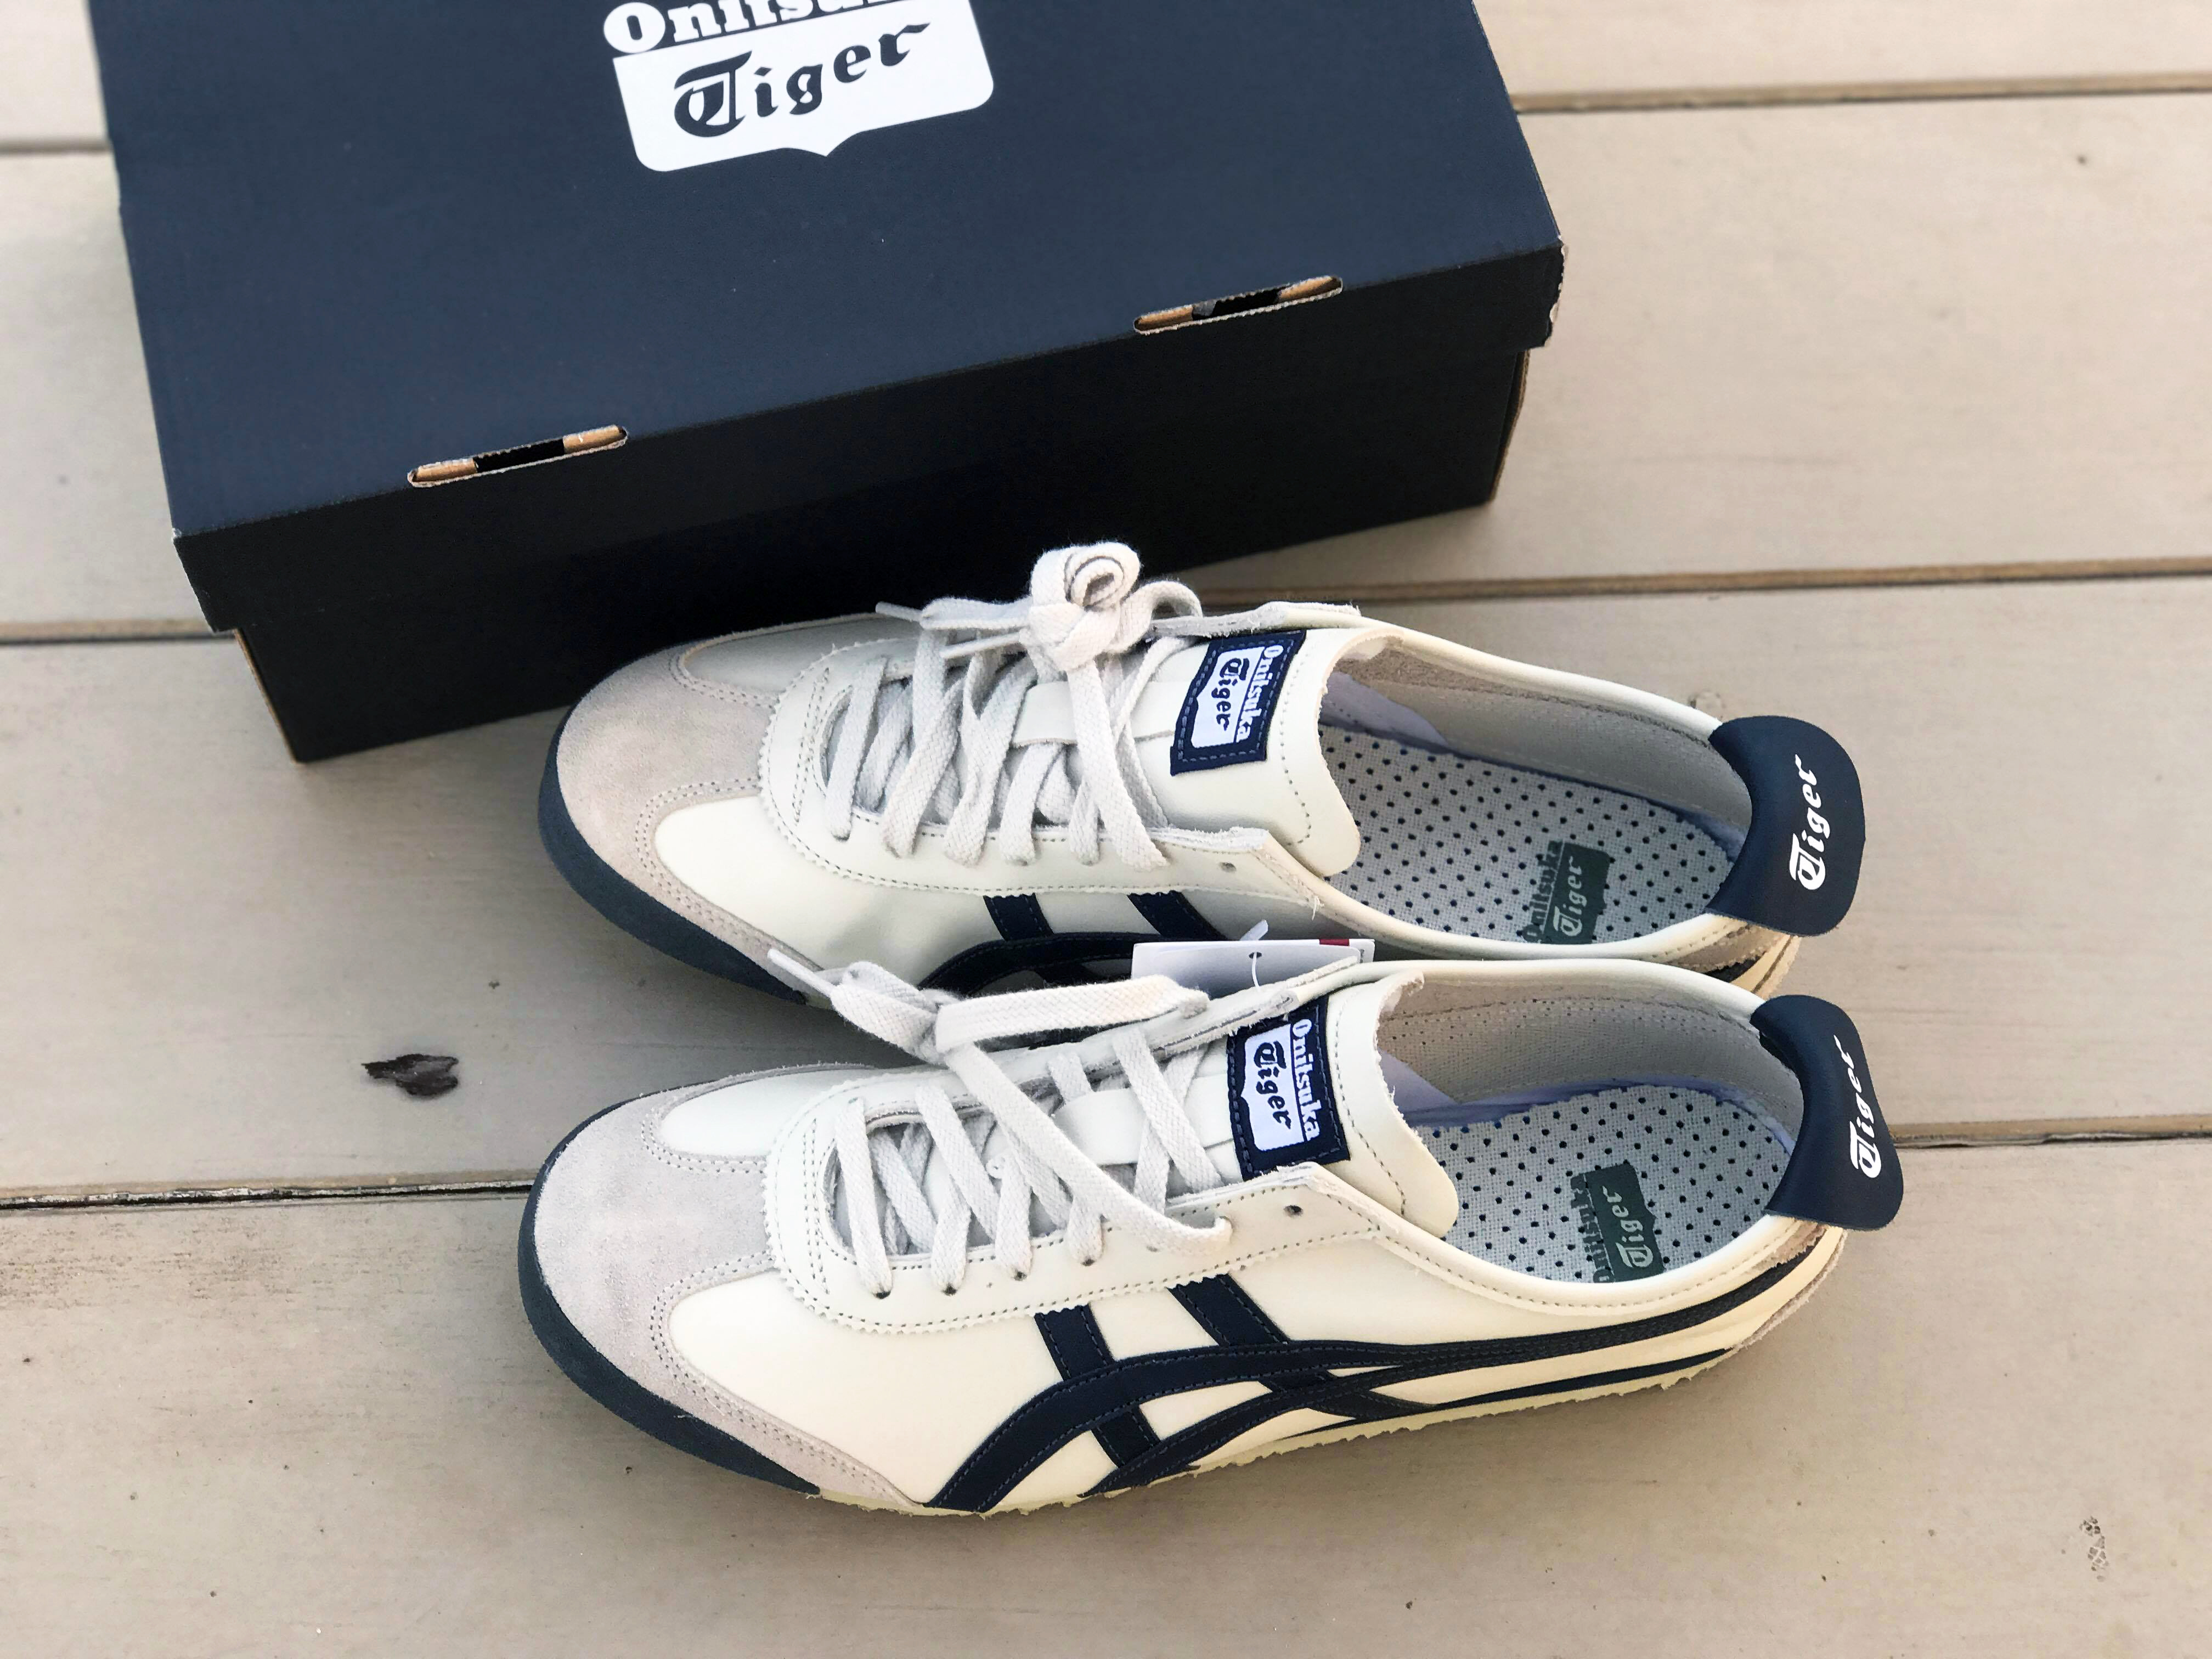 best sneakers 86aca 7608d ONITSUKA TIGER MEXICO 66 (Birch/India Ink/Latte) : Price 4,200.-